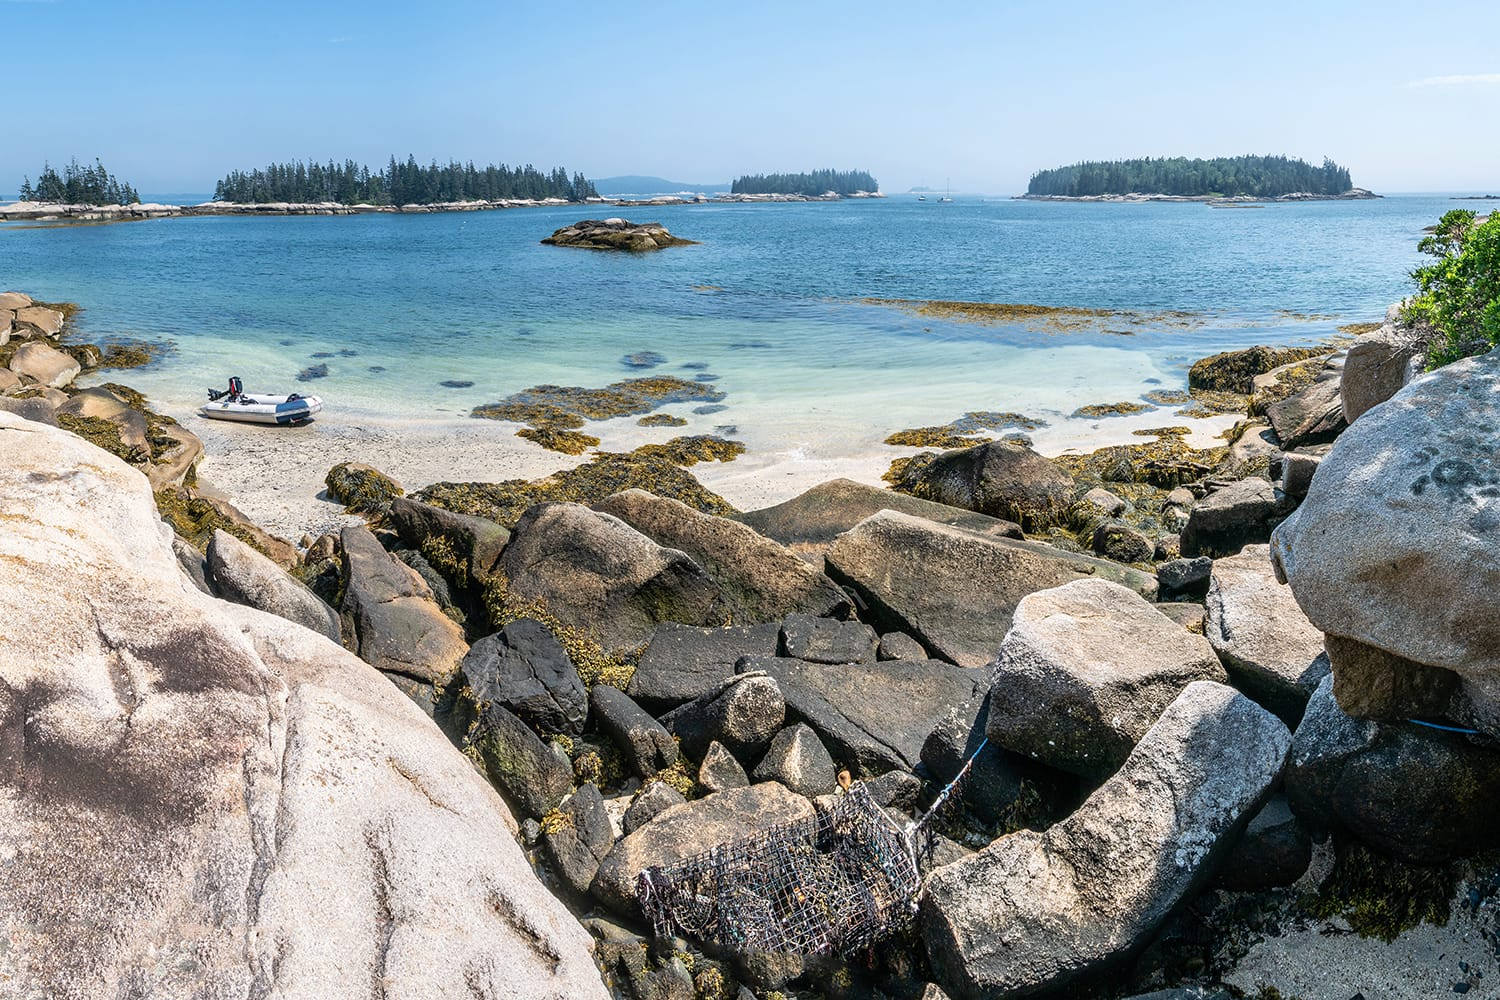 A view of the White Island archipelago from South Big Garden Island near Vinalhaven, Maine in Penobscott Bay.